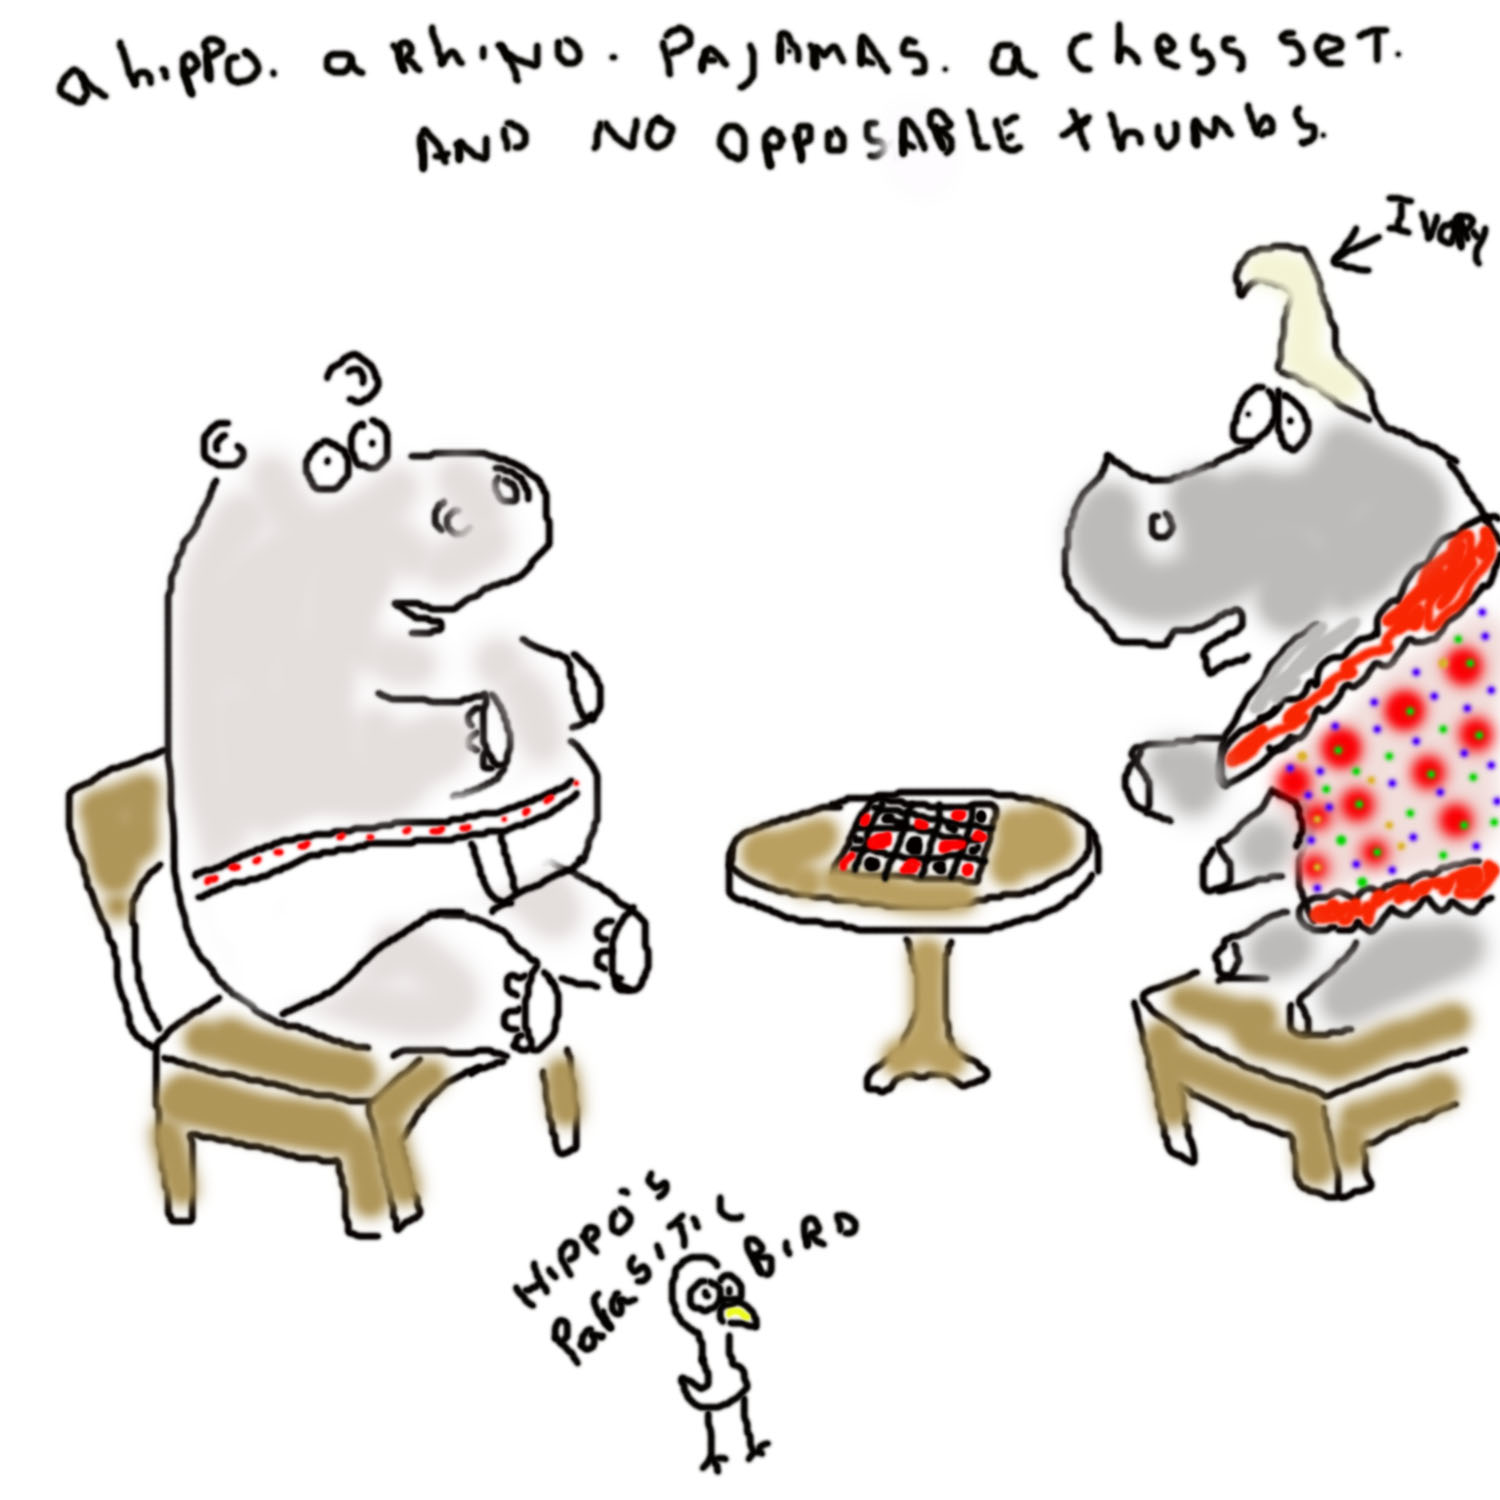 A hippo, a rhino, pajamas, a checkerboard and no opposable thumbs